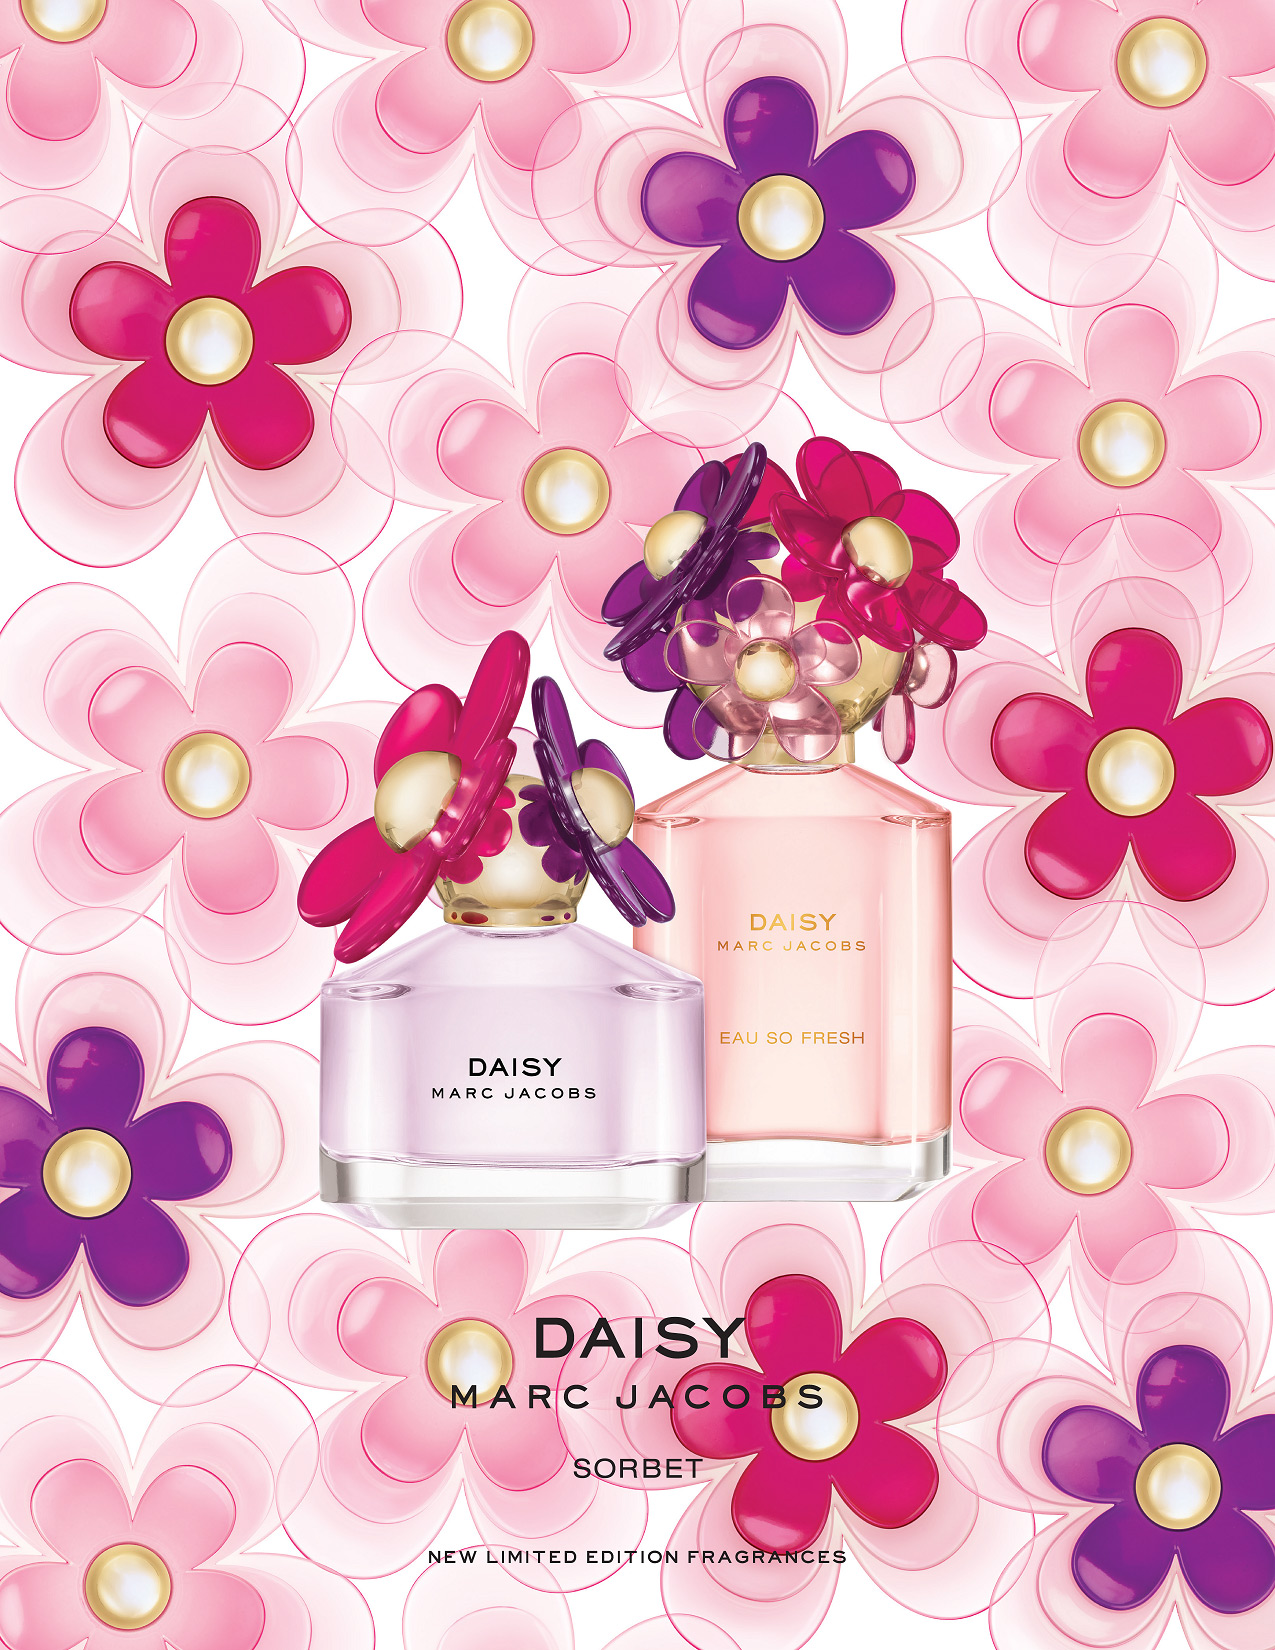 Daisy sorbet marc jacobs perfume a new fragrance for women 2015 daisy sorbet marc jacobs for women pictures izmirmasajfo Image collections